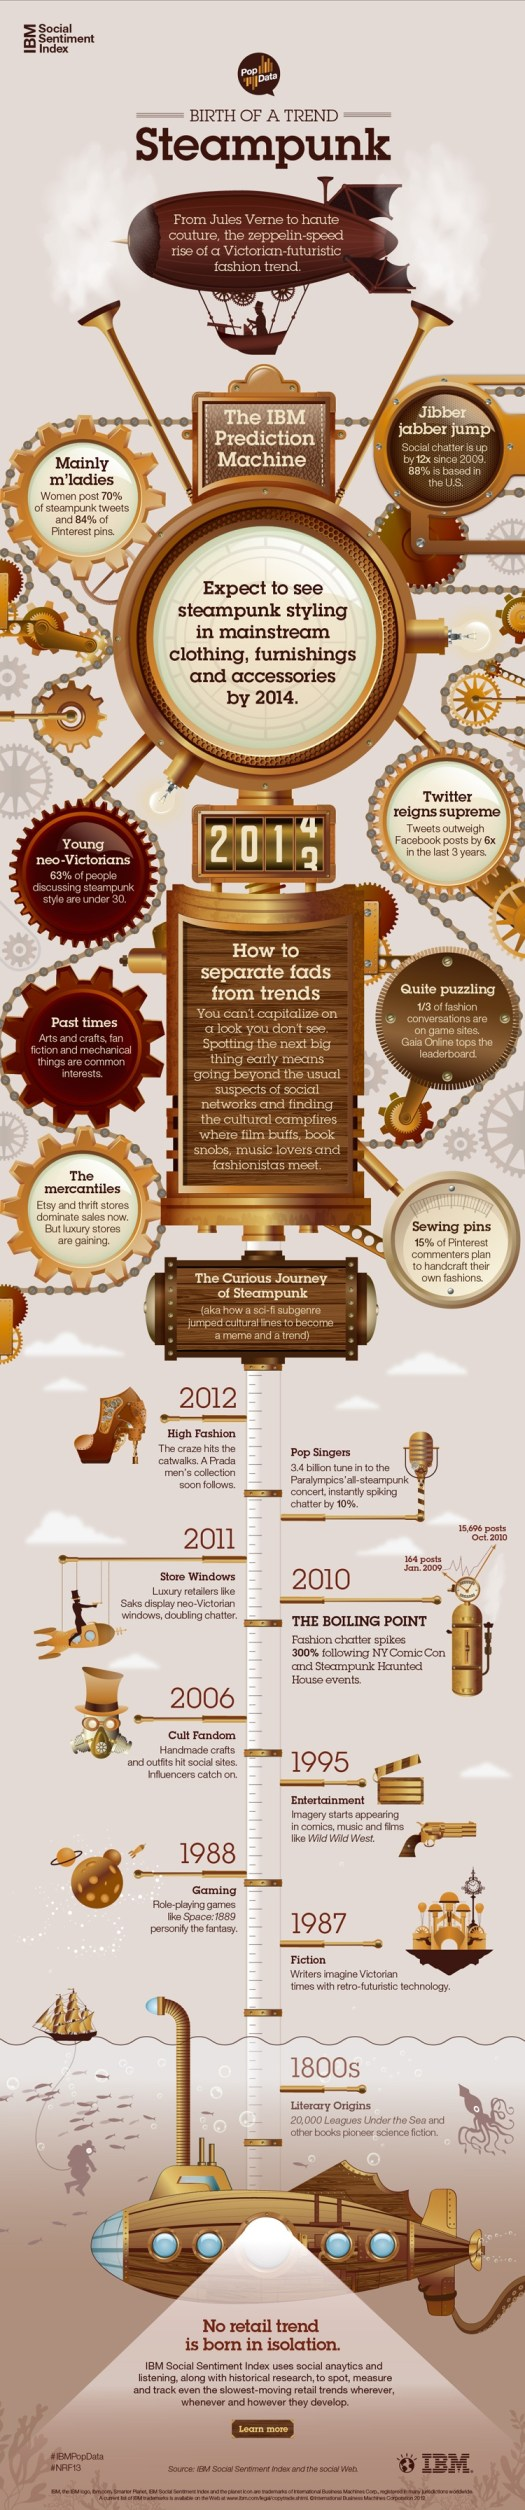 IBM STEAMPUNK - The birth of a trend - Infographic